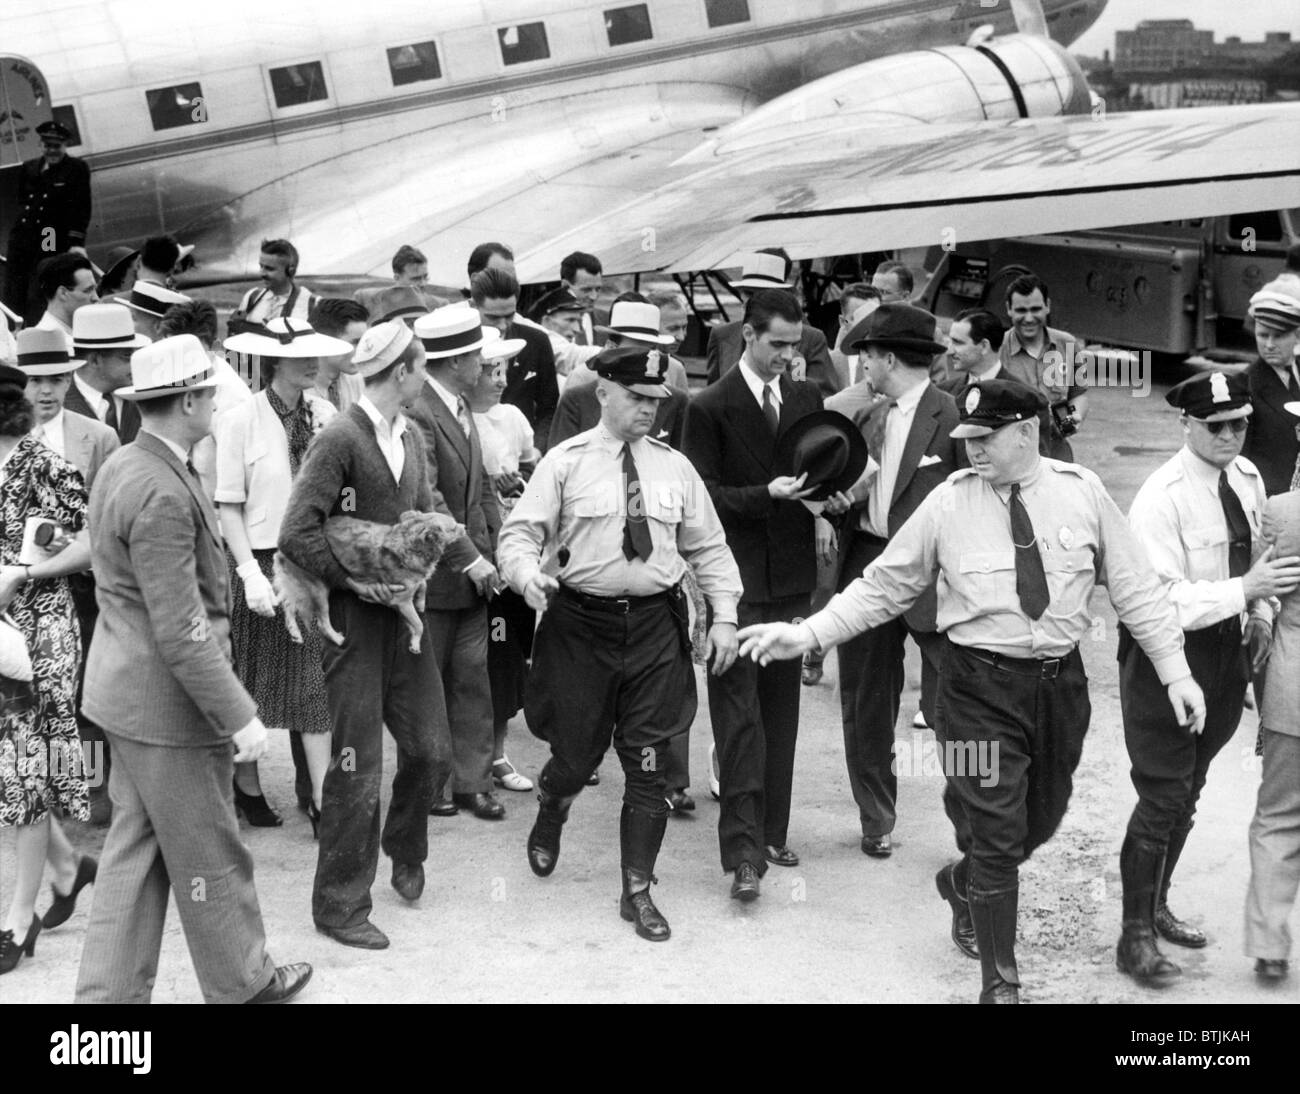 Howard Hughes leaves his plane in Washington, DC after his round the world flight, 7/21/38 - Stock Image